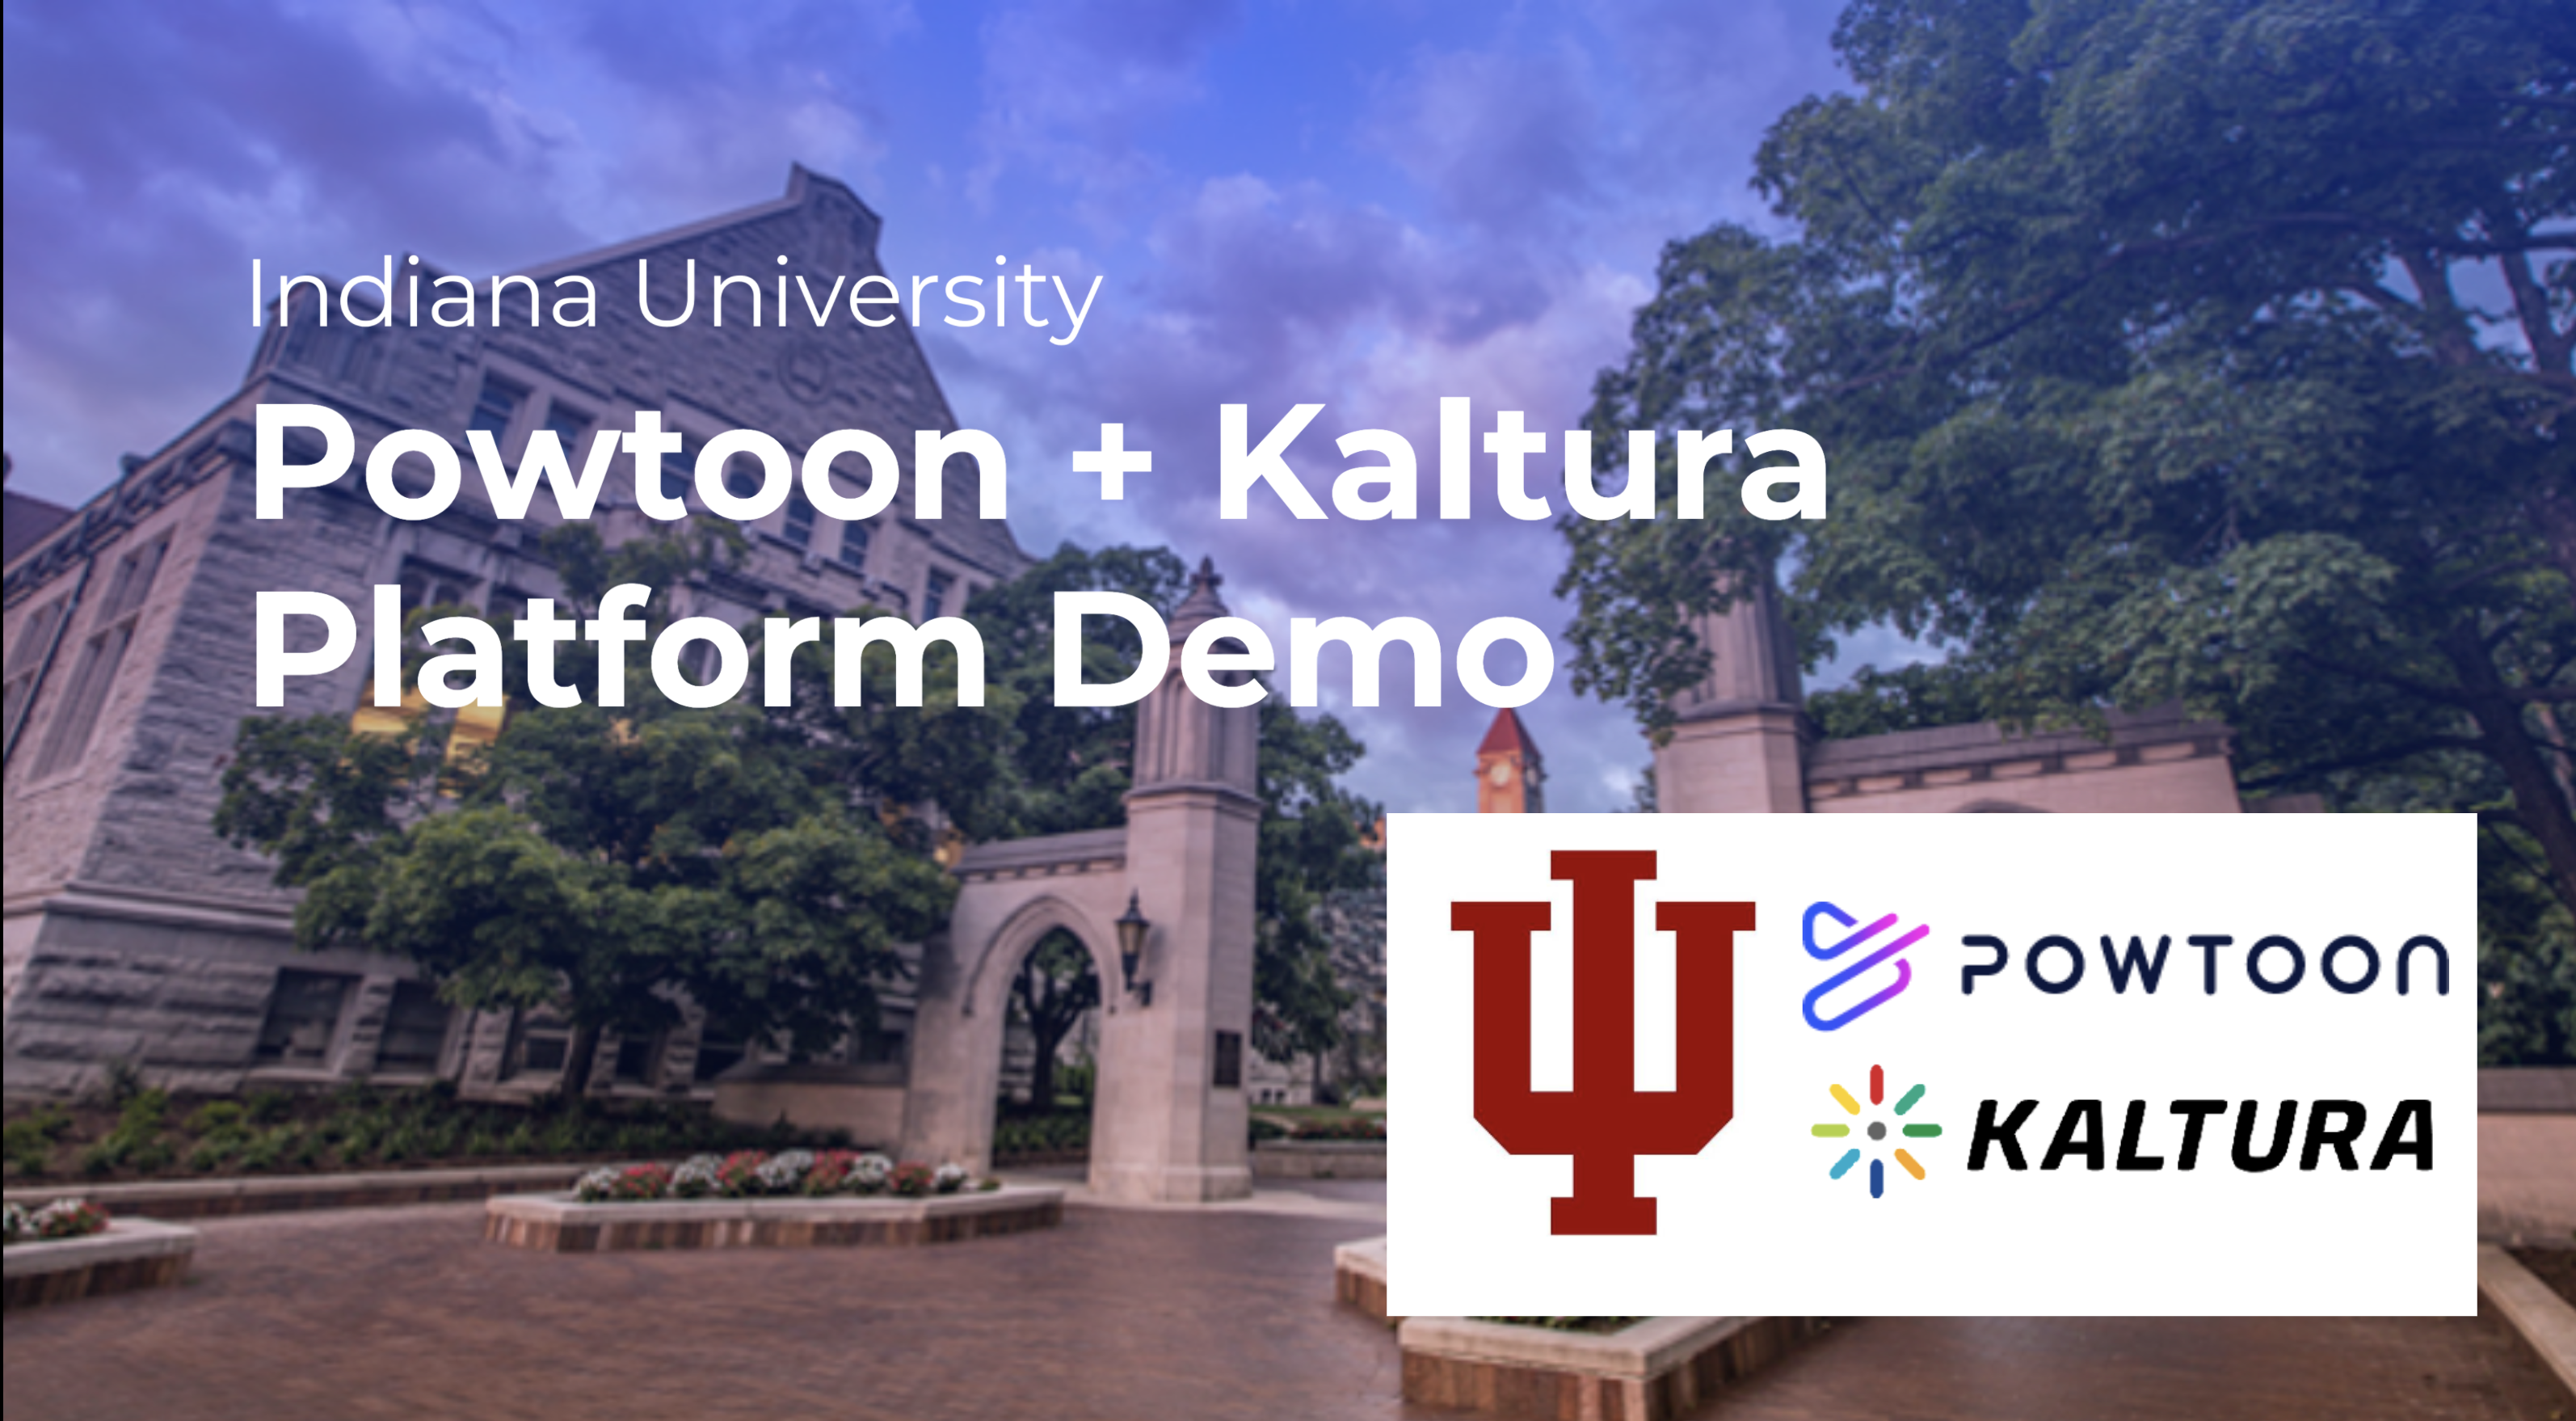 Powtoon kaltura platform demo for Indiana University